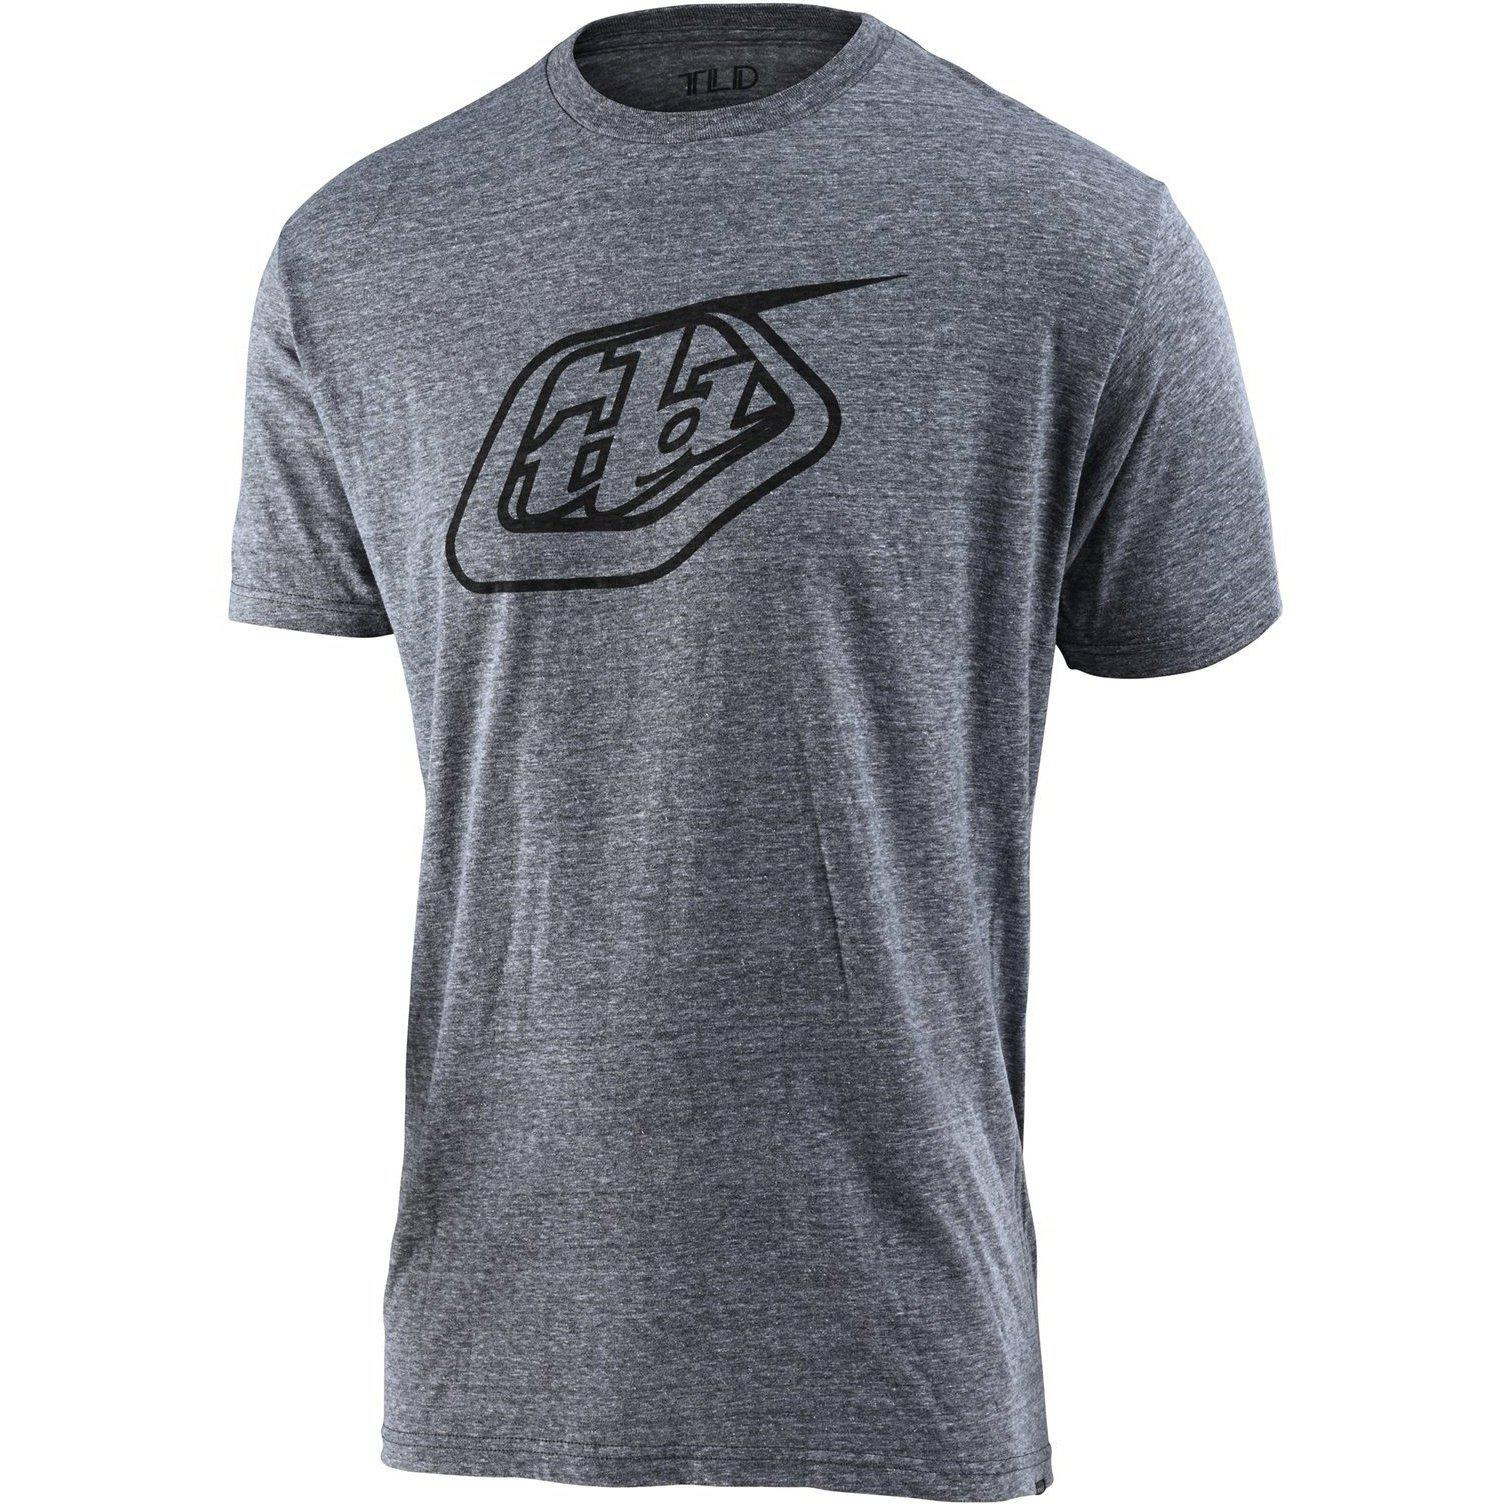 Troy Lee Designs-Troy Lee Designs Logo Tee-Vintage Gray Snow-S-TLD701817012-saddleback-elite-performance-cycling